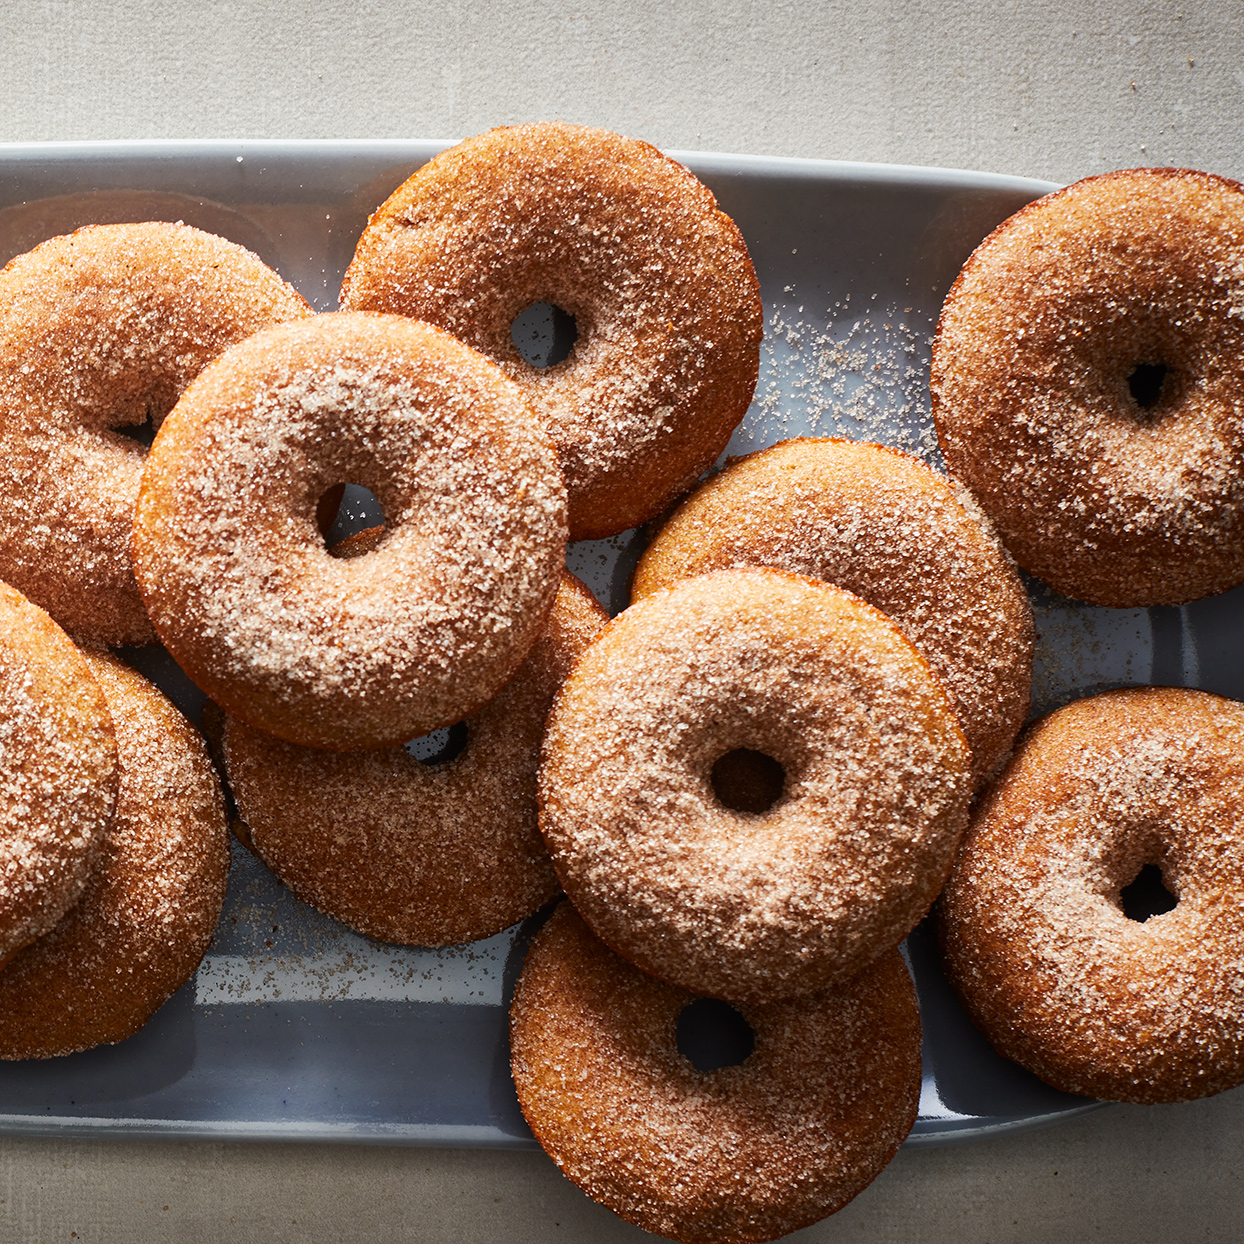 Cinnamon-Sugar Dusted Apple Cider Donuts Sarah Epperson